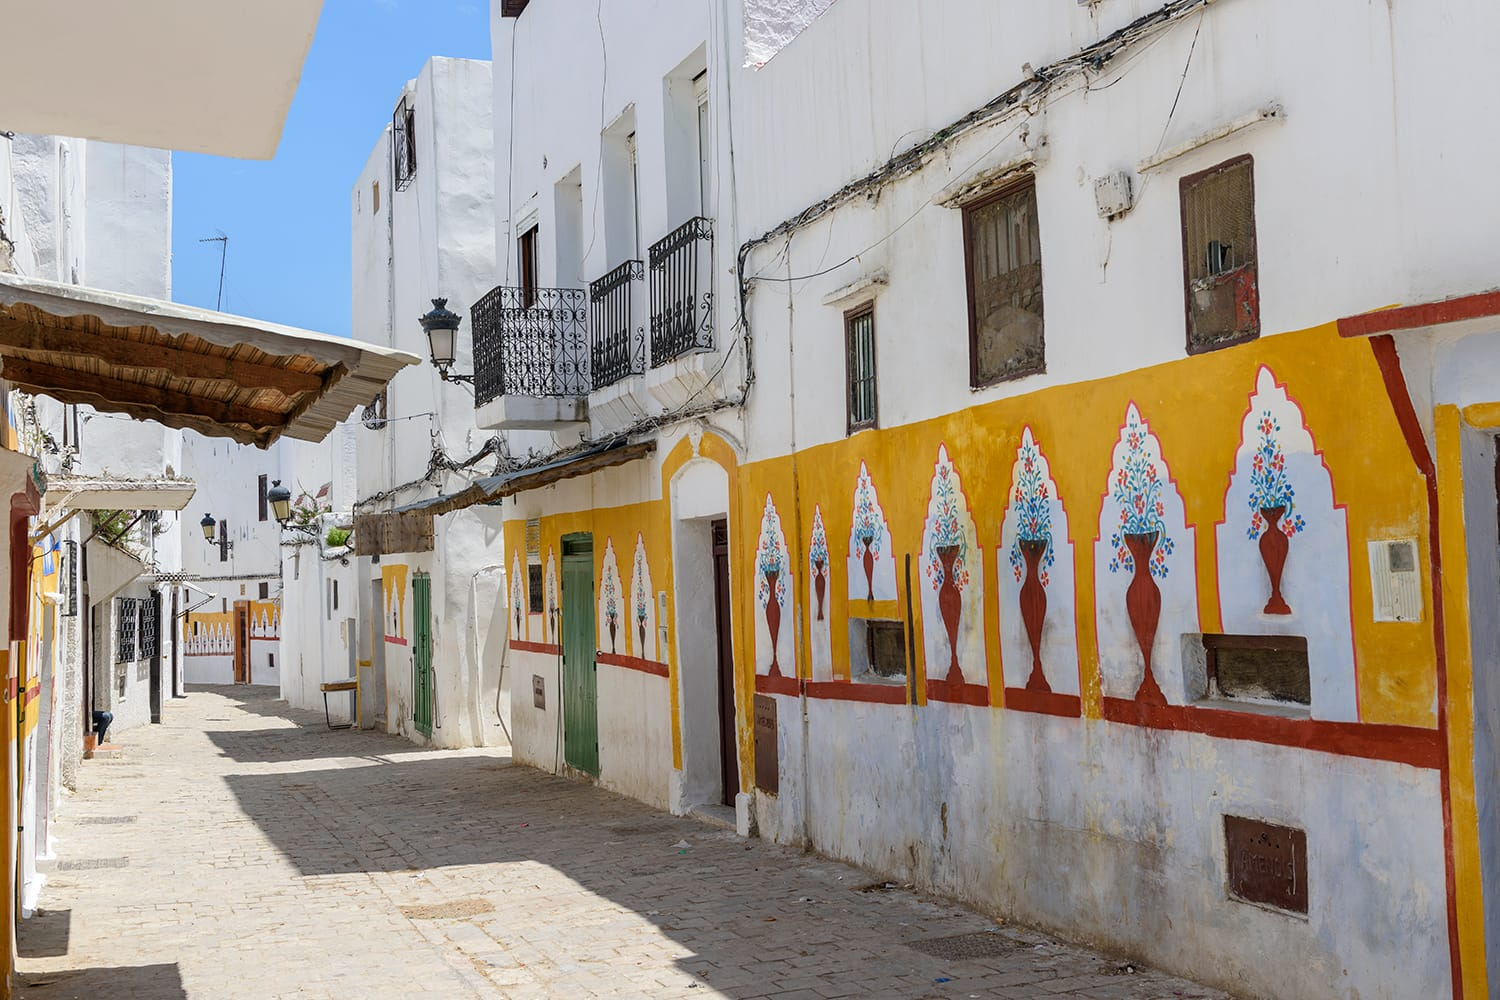 Painted houses in Tetouan, Morocco